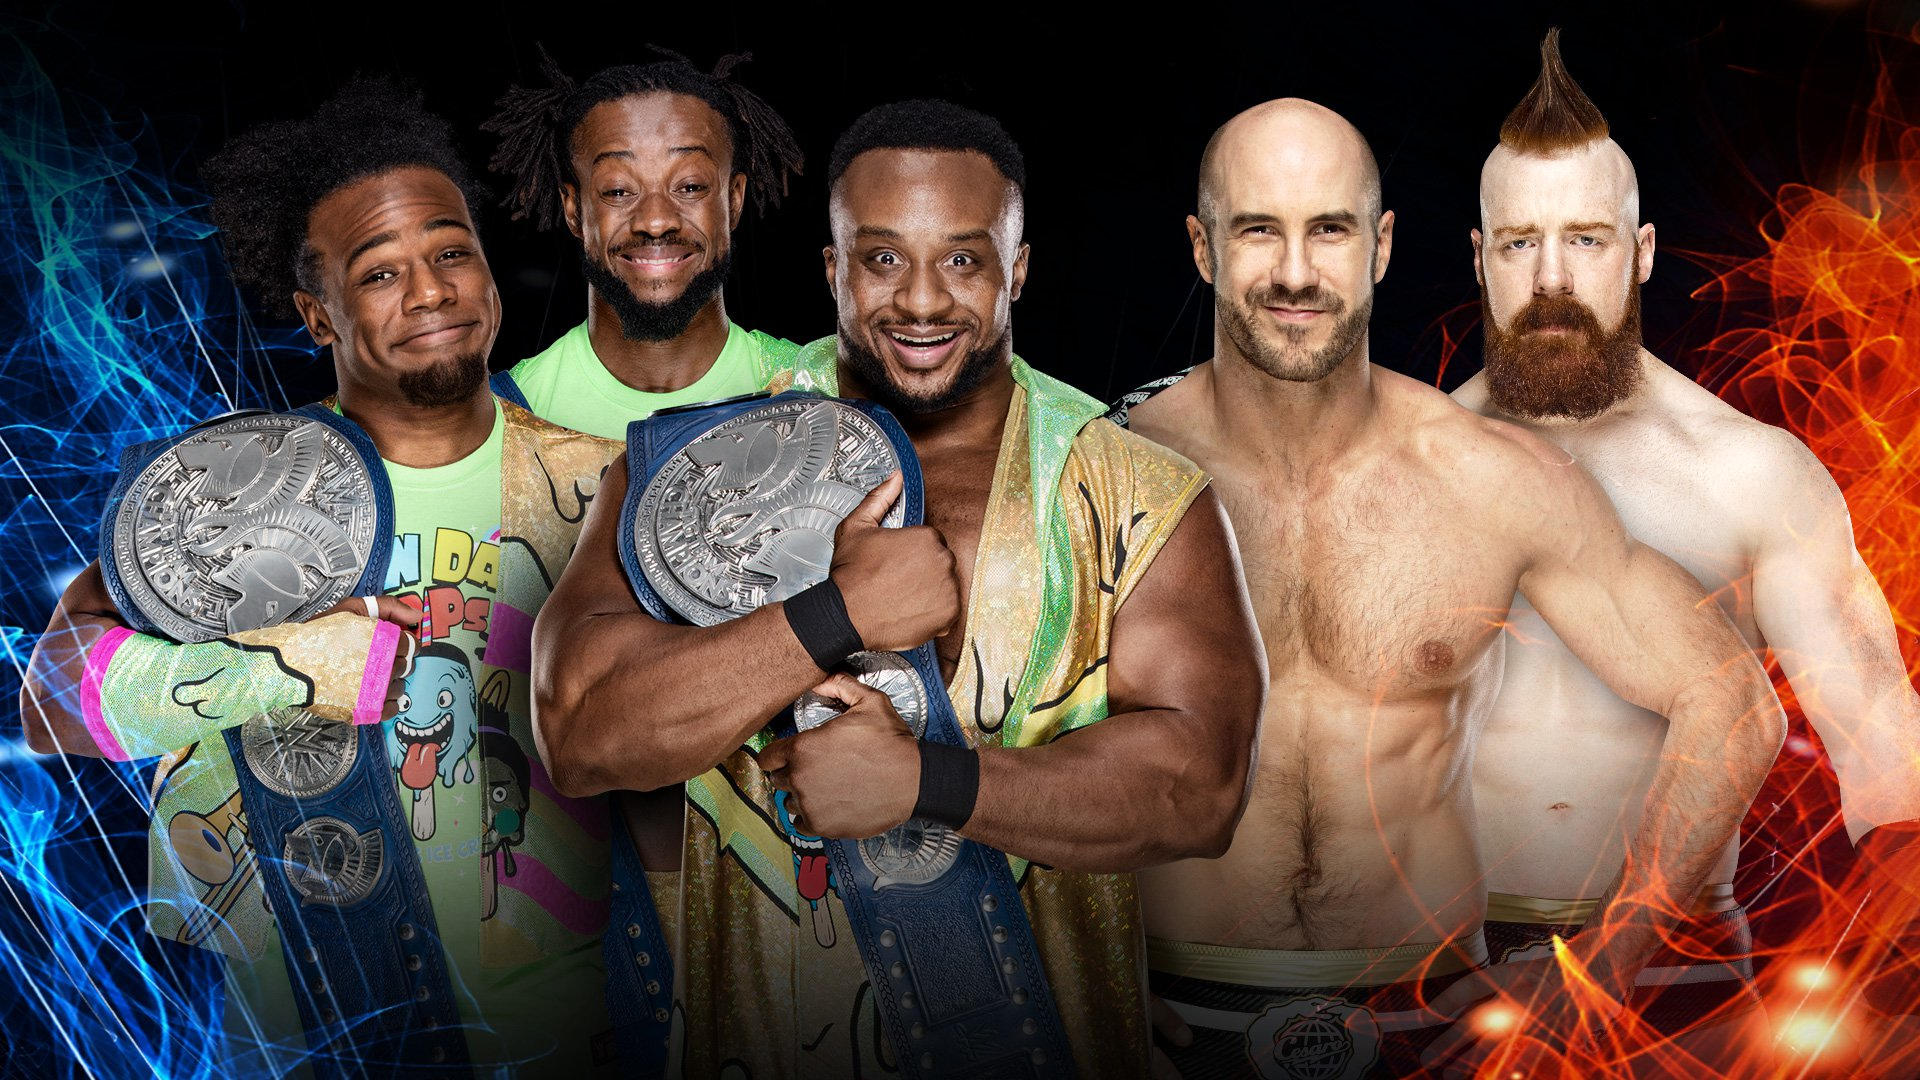 Confirmed and Potential Matches for WWE Super Show-Down 2018 20180831_SuperShowDown_Match_TheNewDay_TheBar--068c20242f5b0160d6d17e026b13375d